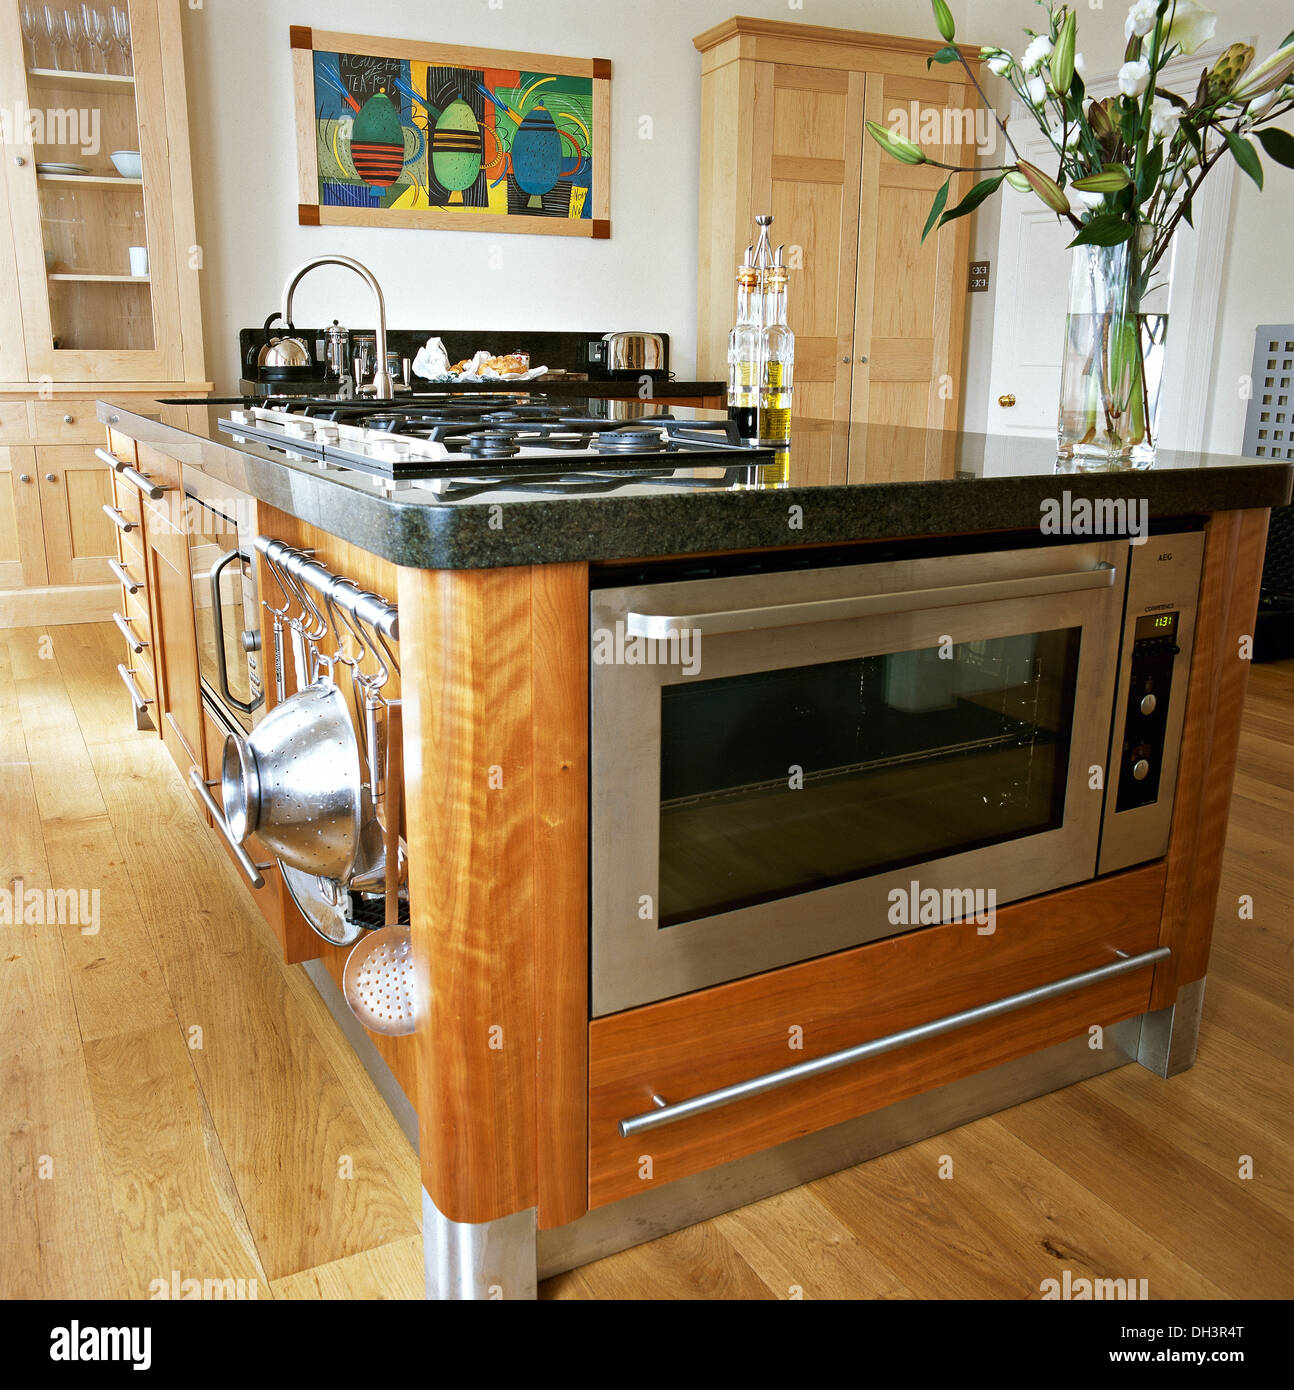 Granite Top Kitchen Island Cart Stainless Steel Oven And Integral Hob In Central Island